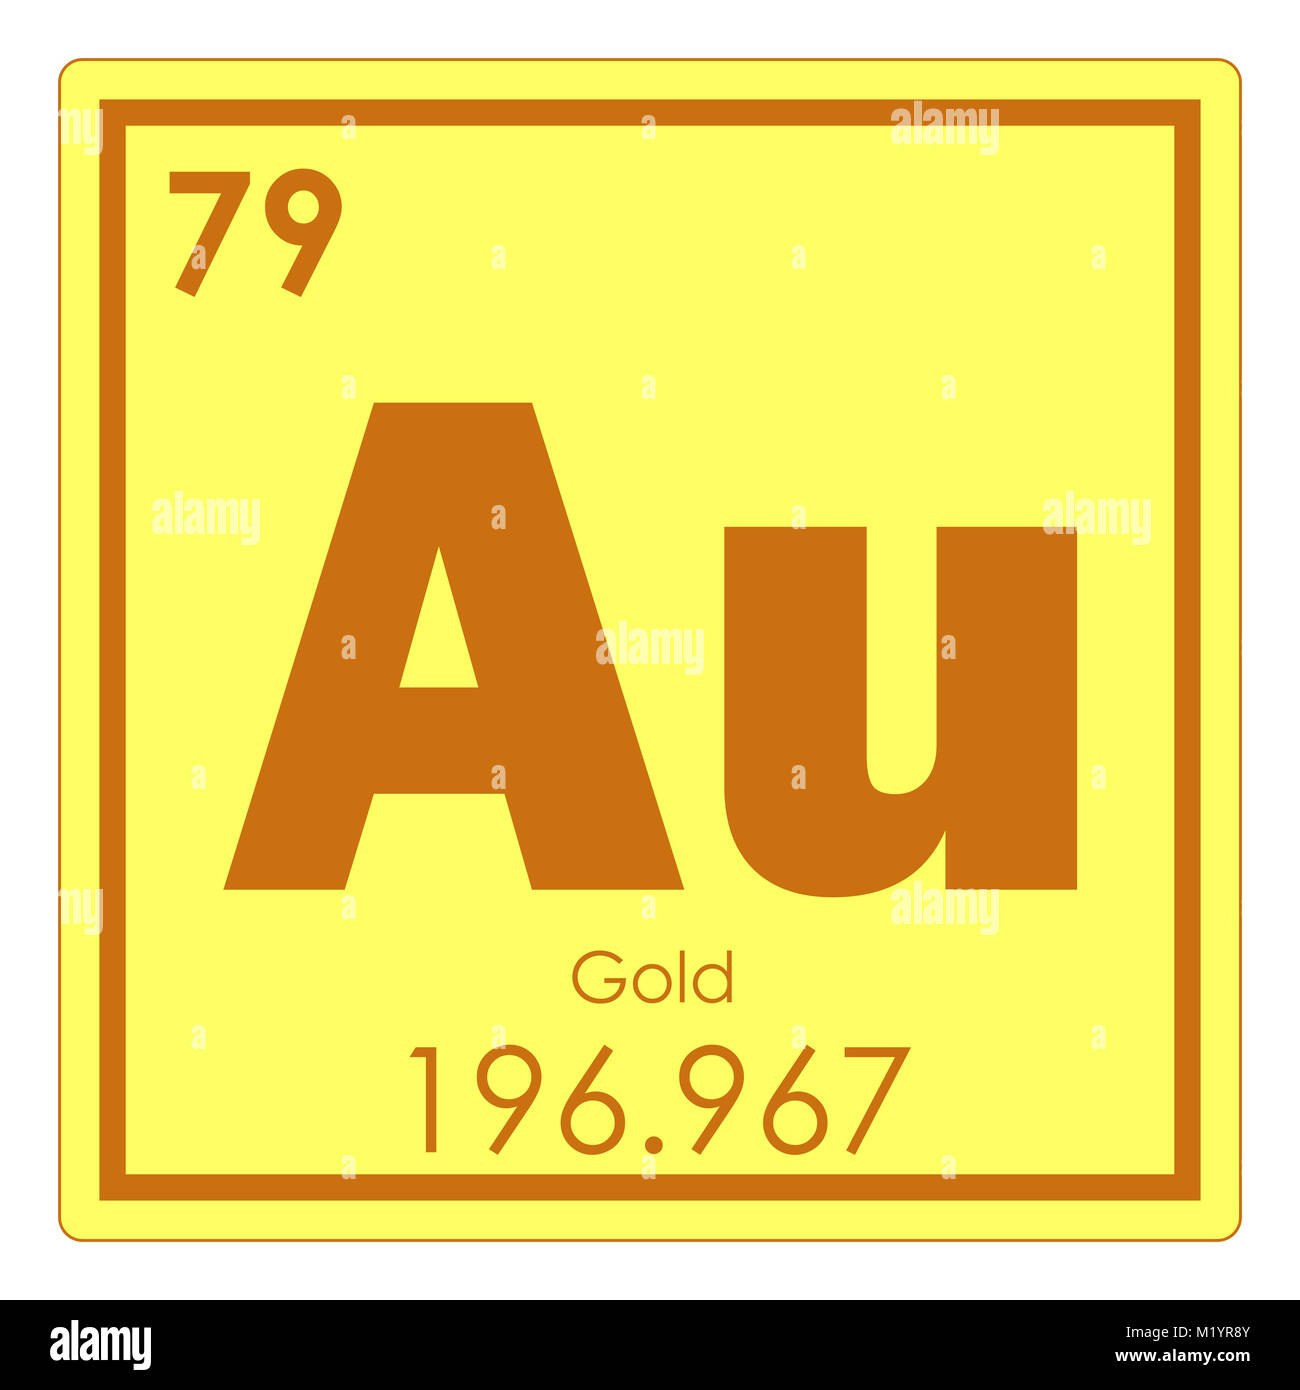 Gold chemical element periodic table science symbol stock photo gold chemical element periodic table science symbol urtaz